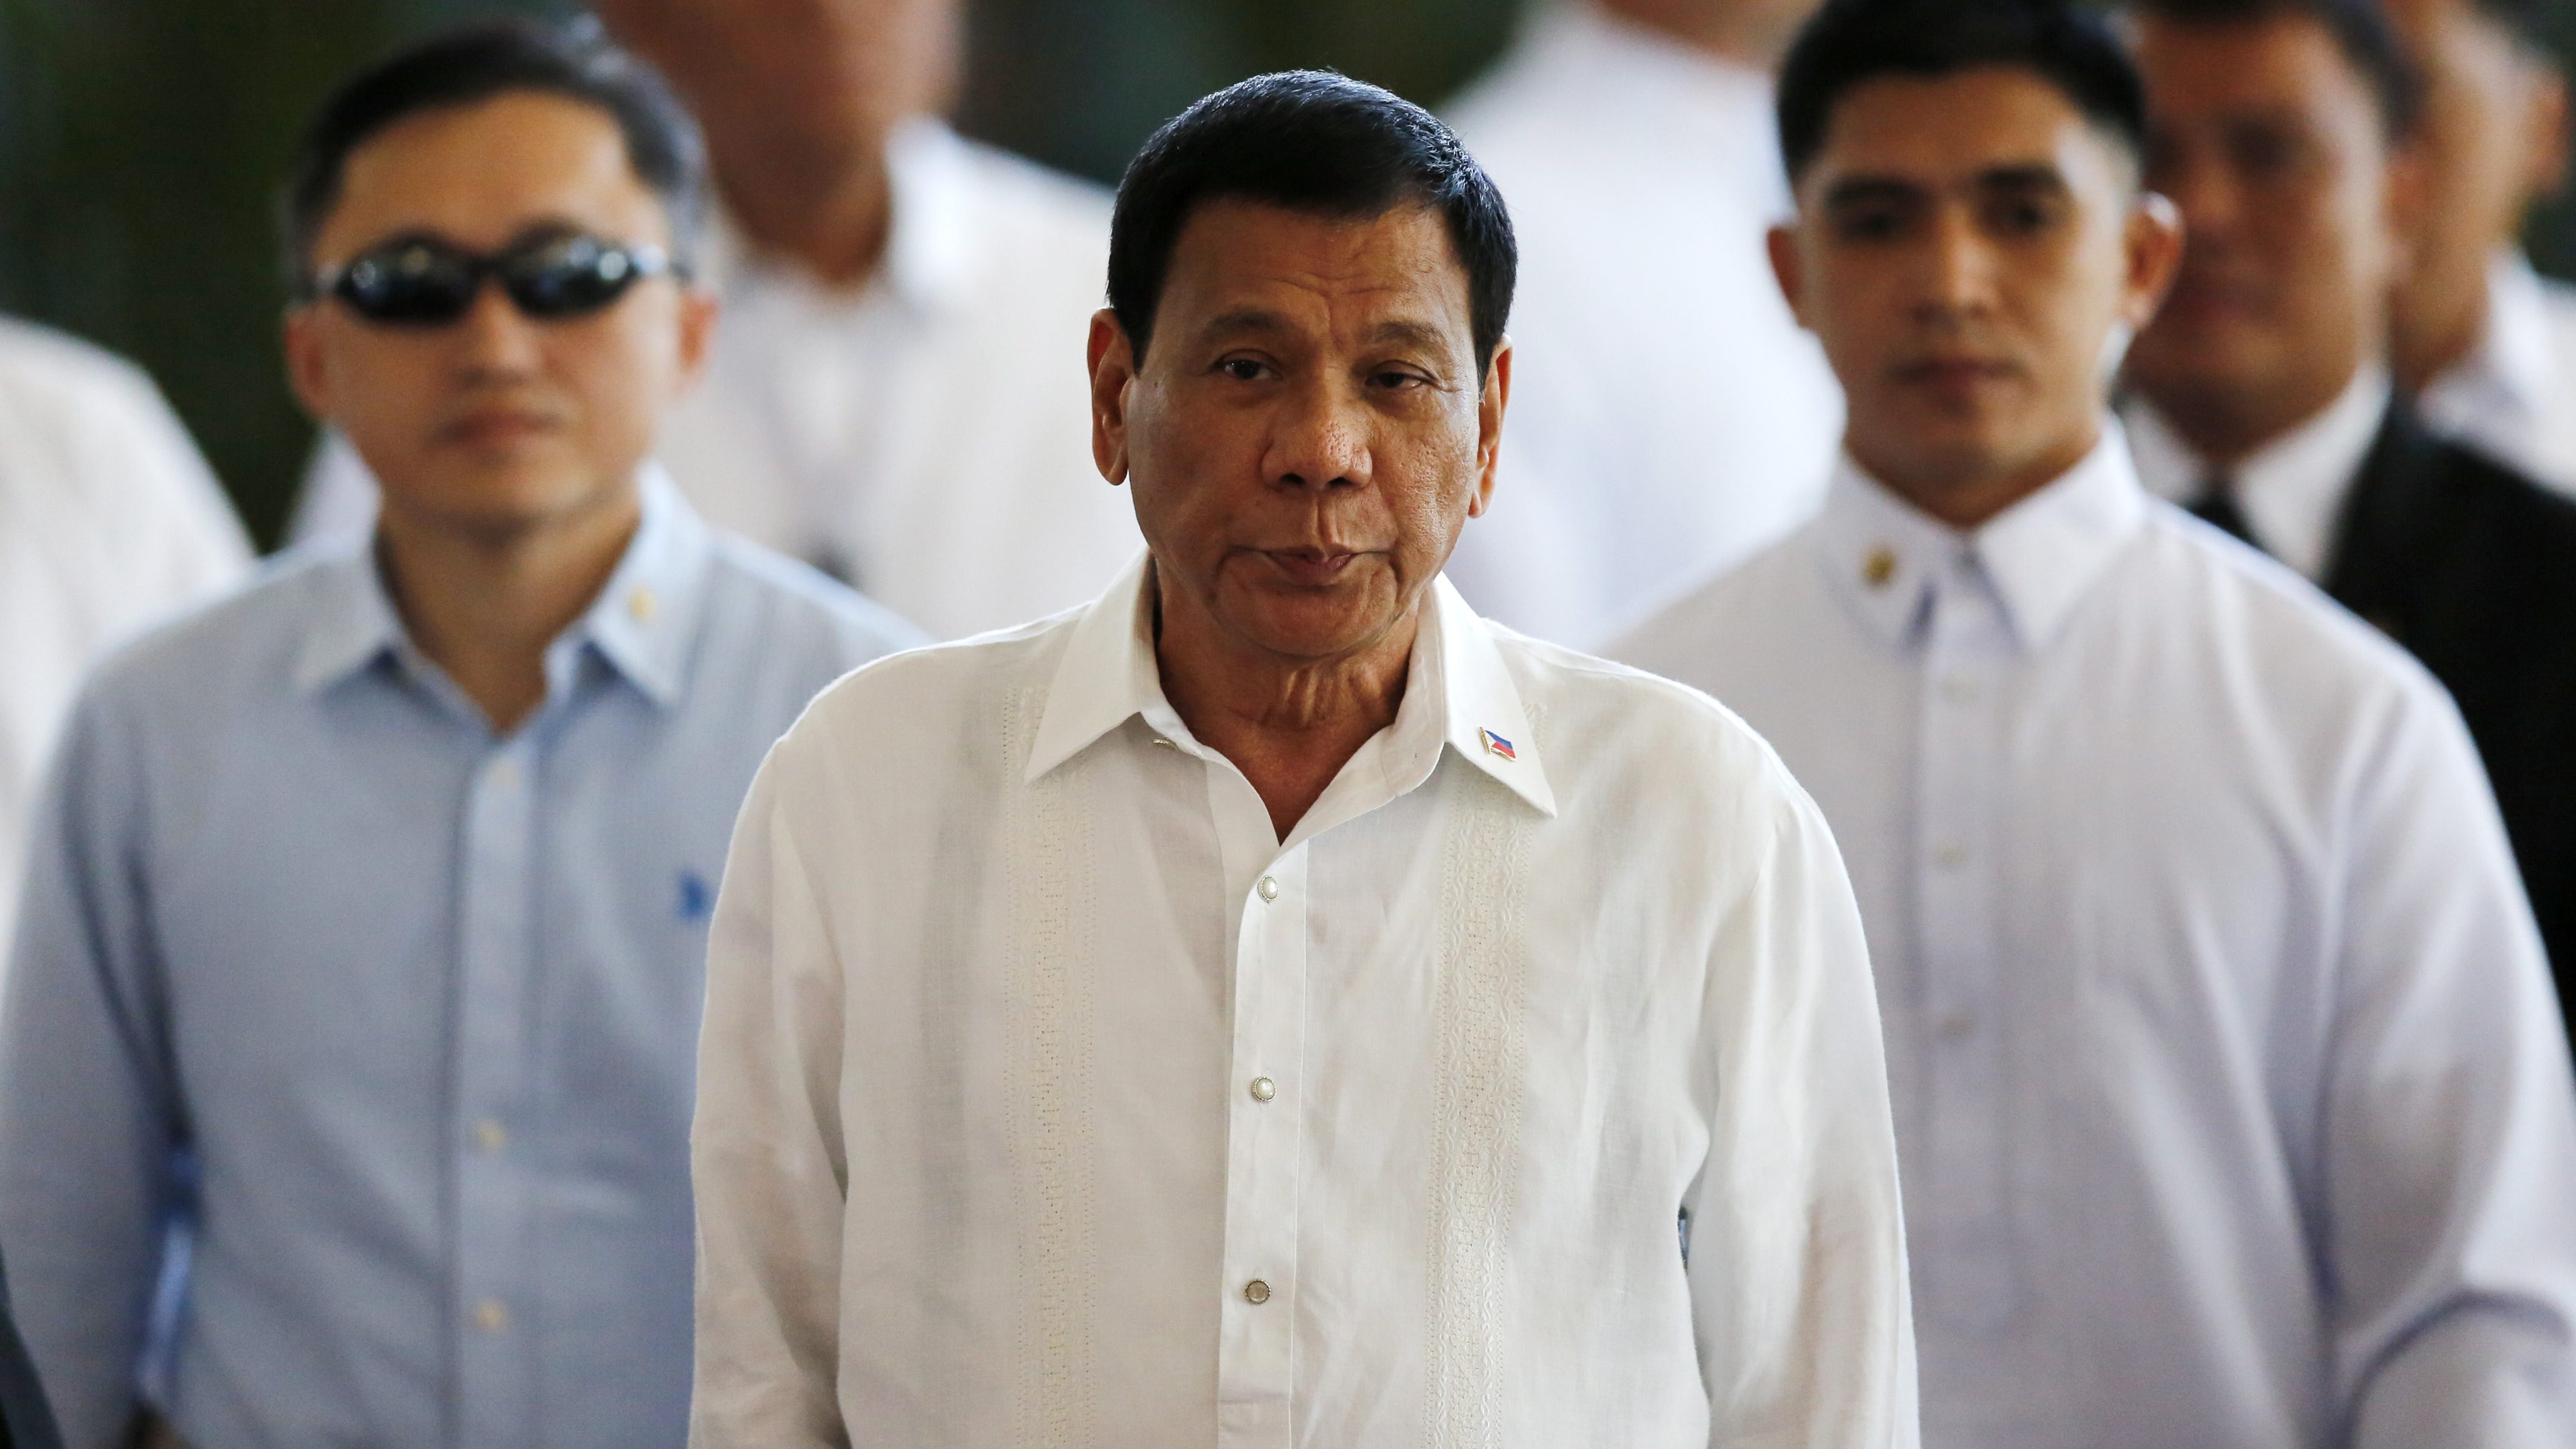 Filipino President Rodrigo Duterte is escorted during a departure ceremony at Manila's international airport, Philippines, 25 October 2016. Duterte leaves for Japan to meet Prime Minister Shinzo Abe. The two are expected to agree on expanding bilateral ties in areas of maritime security and defense cooperation, according to news reports.